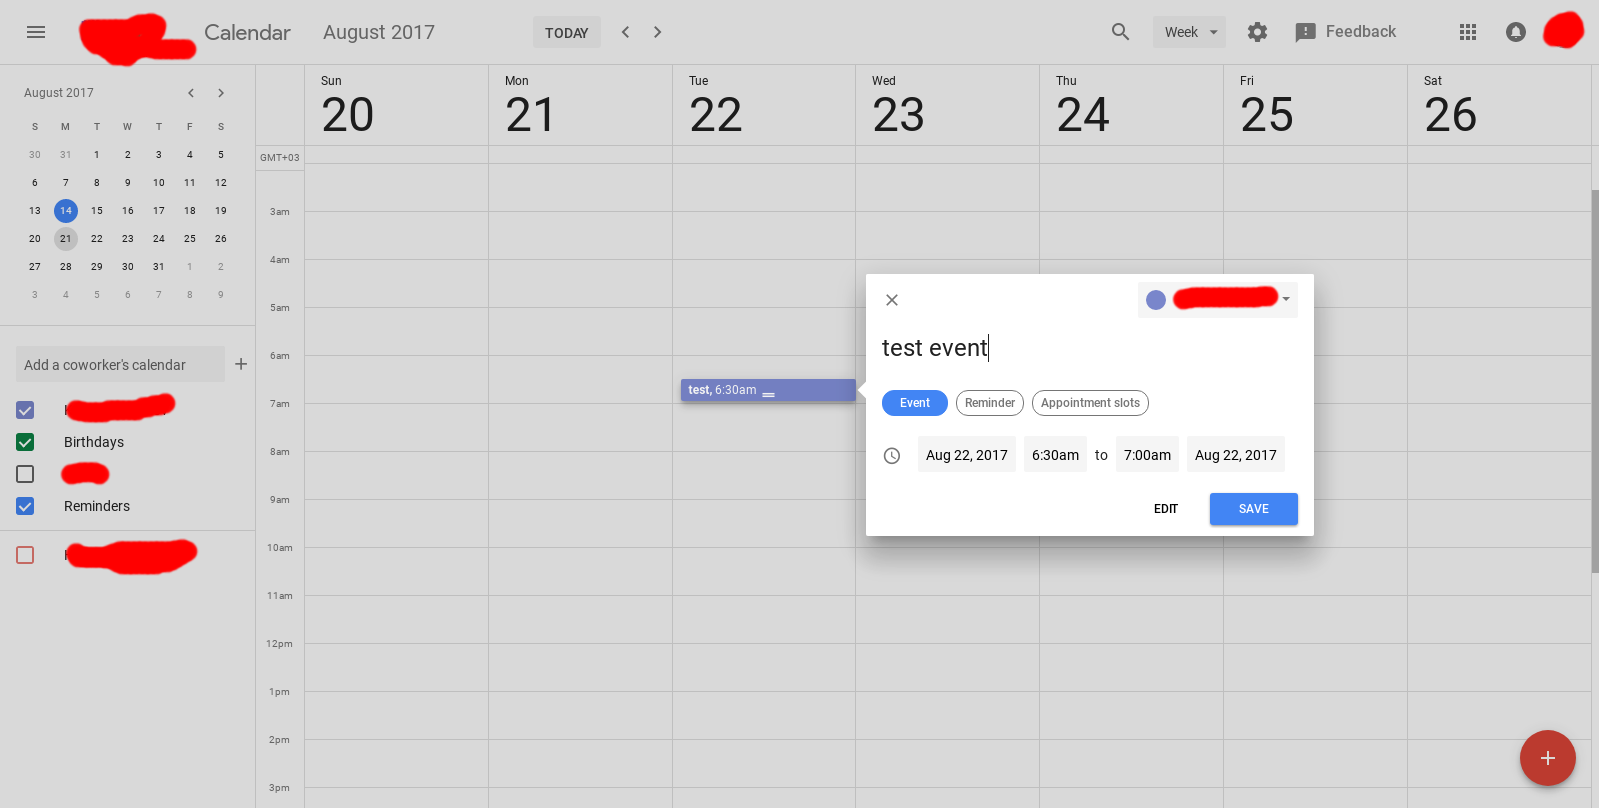 Material Design UI being tested with Google Calendar on